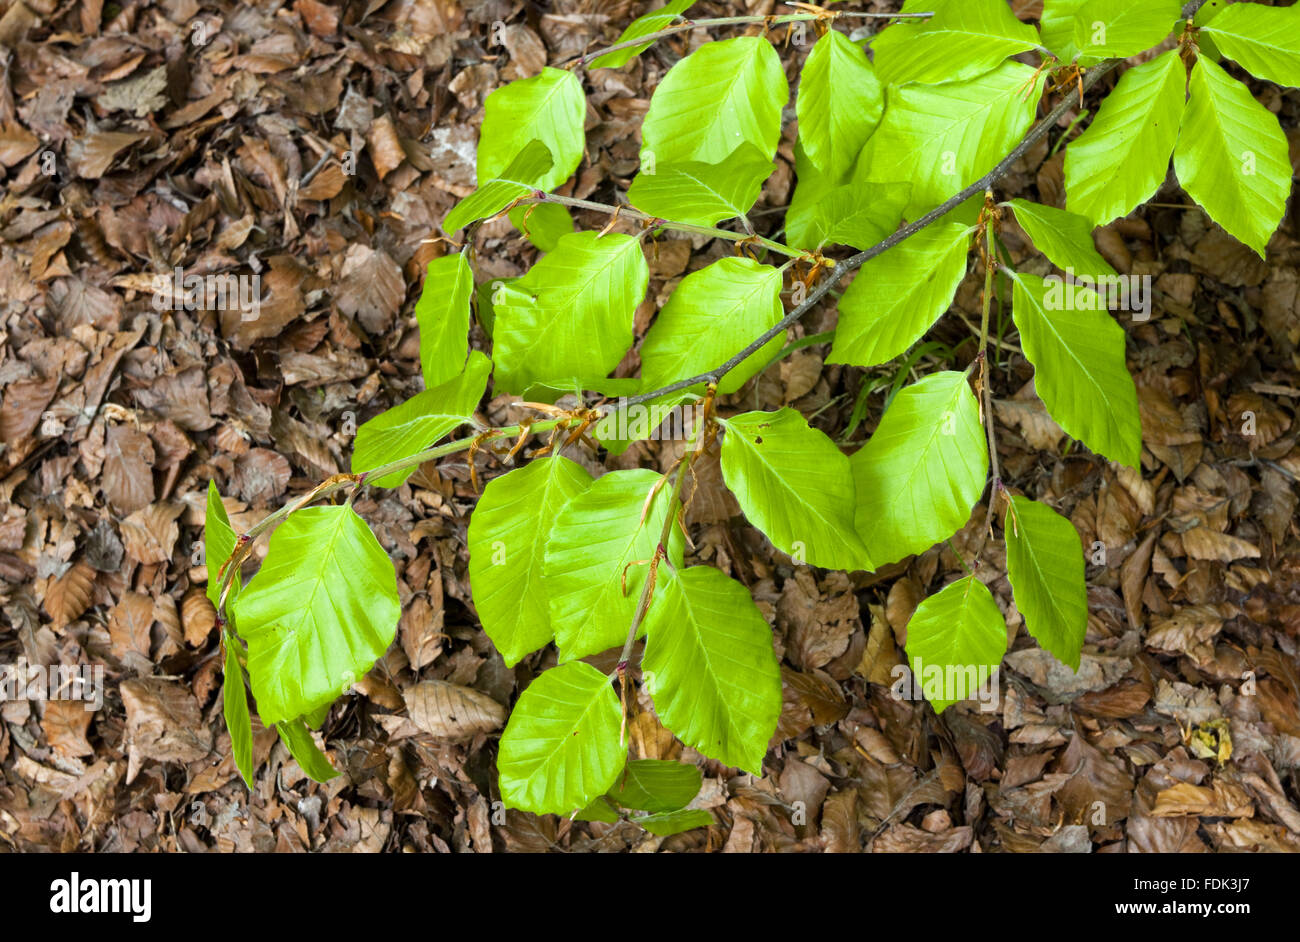 Beech leaves in May at Sharpenhoe Clappers, Bedfordshire. - Stock Image